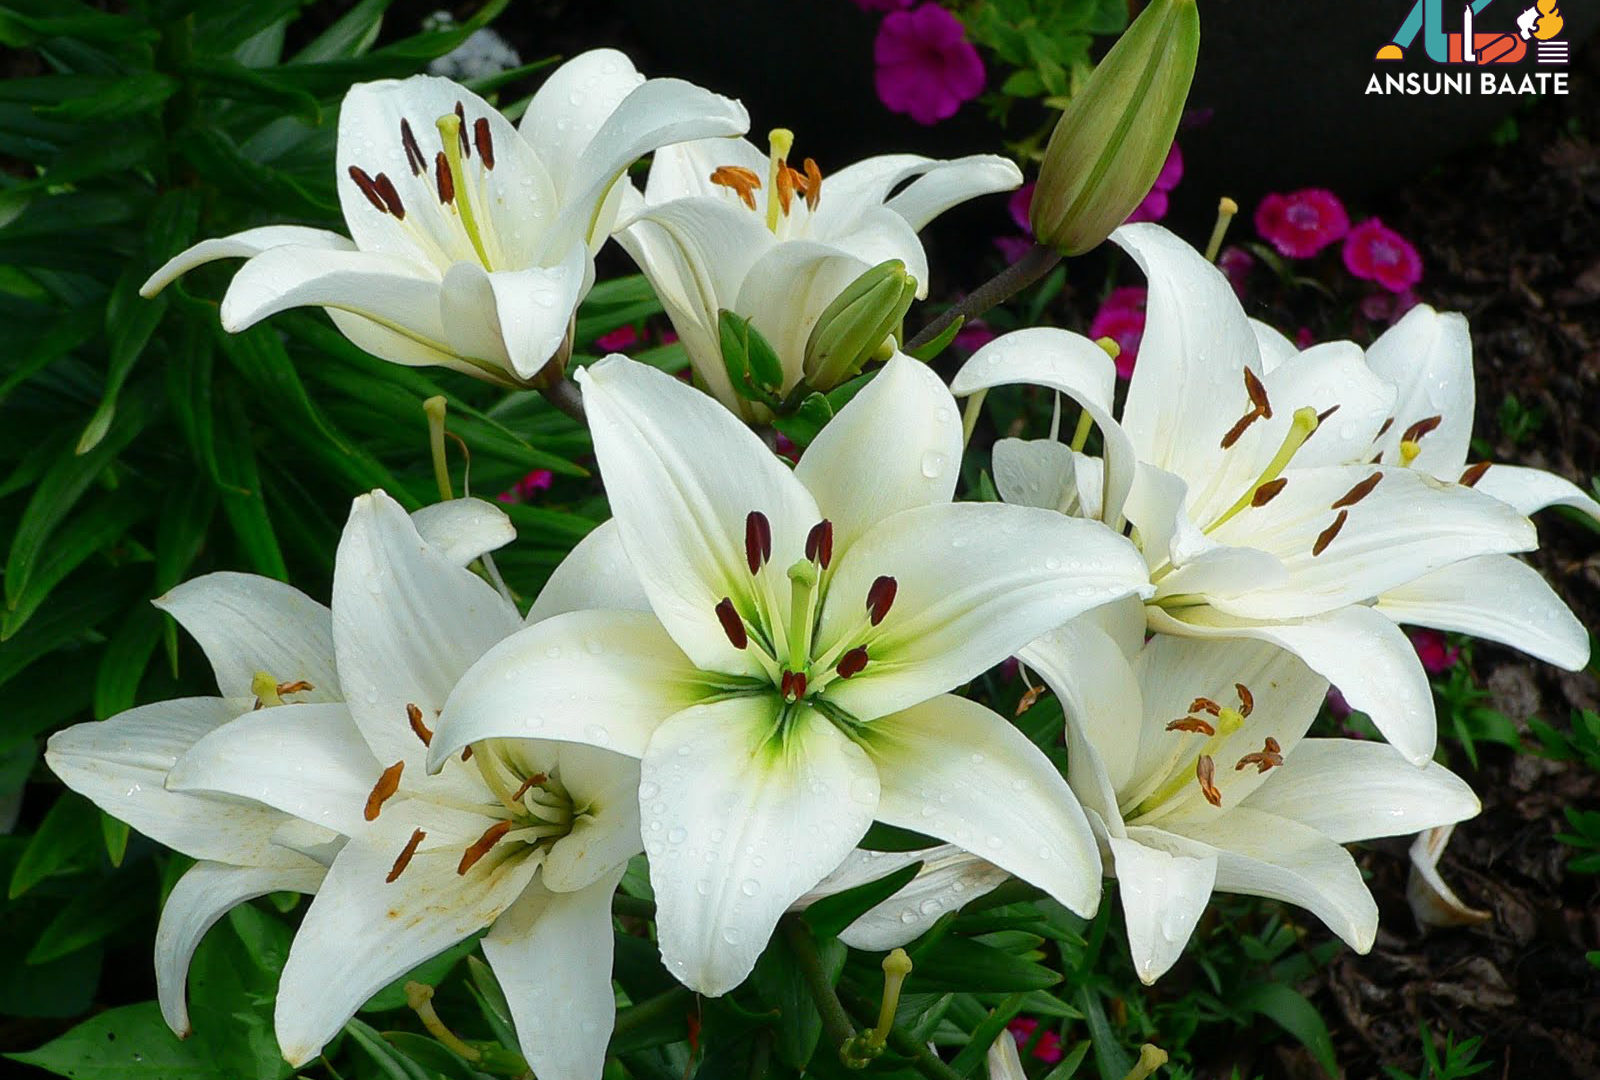 लिलि फ्लावर फोटो वॉलपेपर इमेज फ्री एचडी डाउनलोड Lily Flowers Images & Lily Picture HD Photo Gallery Free Download